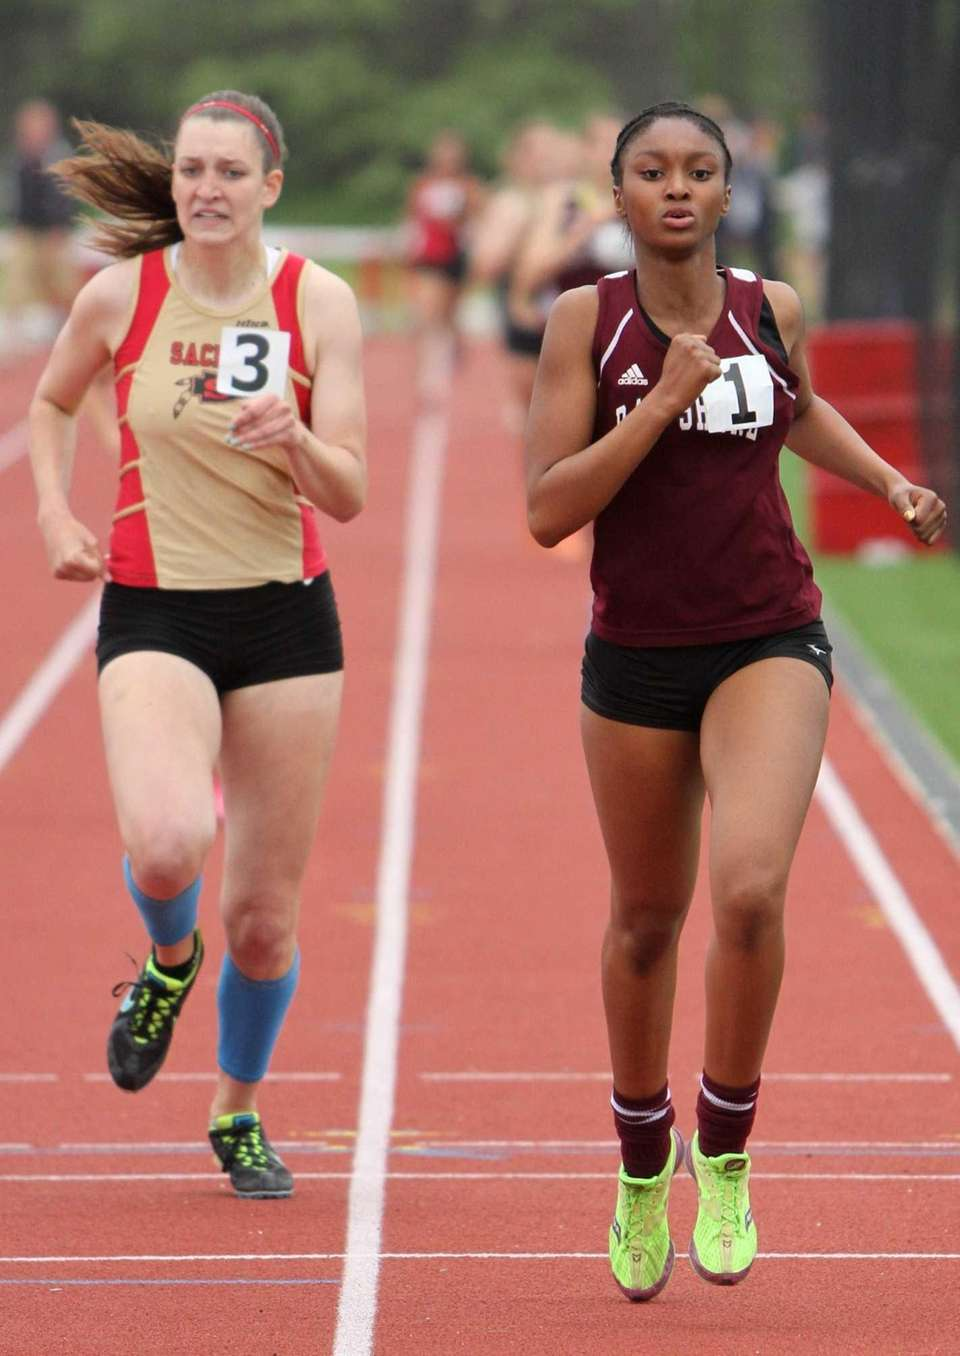 Nailah Braxton of Bay Shore crosses the finish